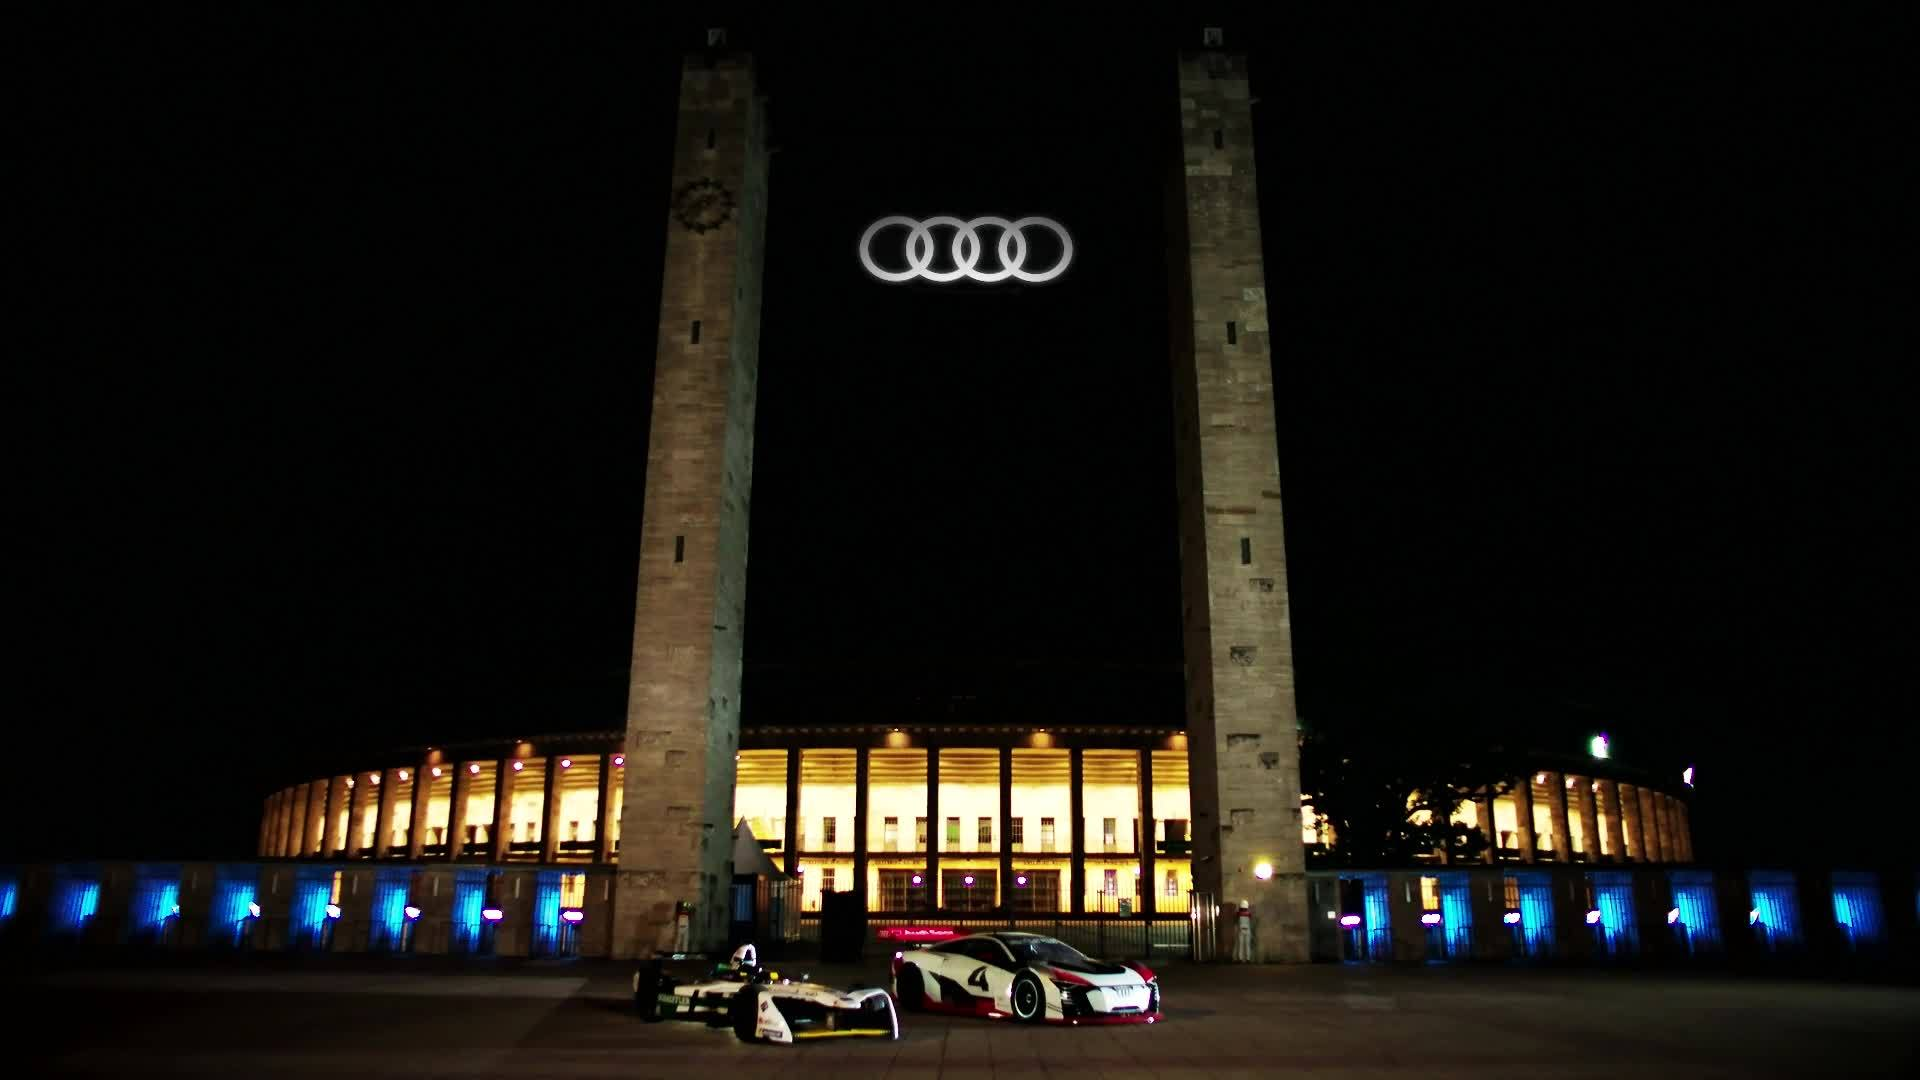 Formel E: Berlin get's electrified